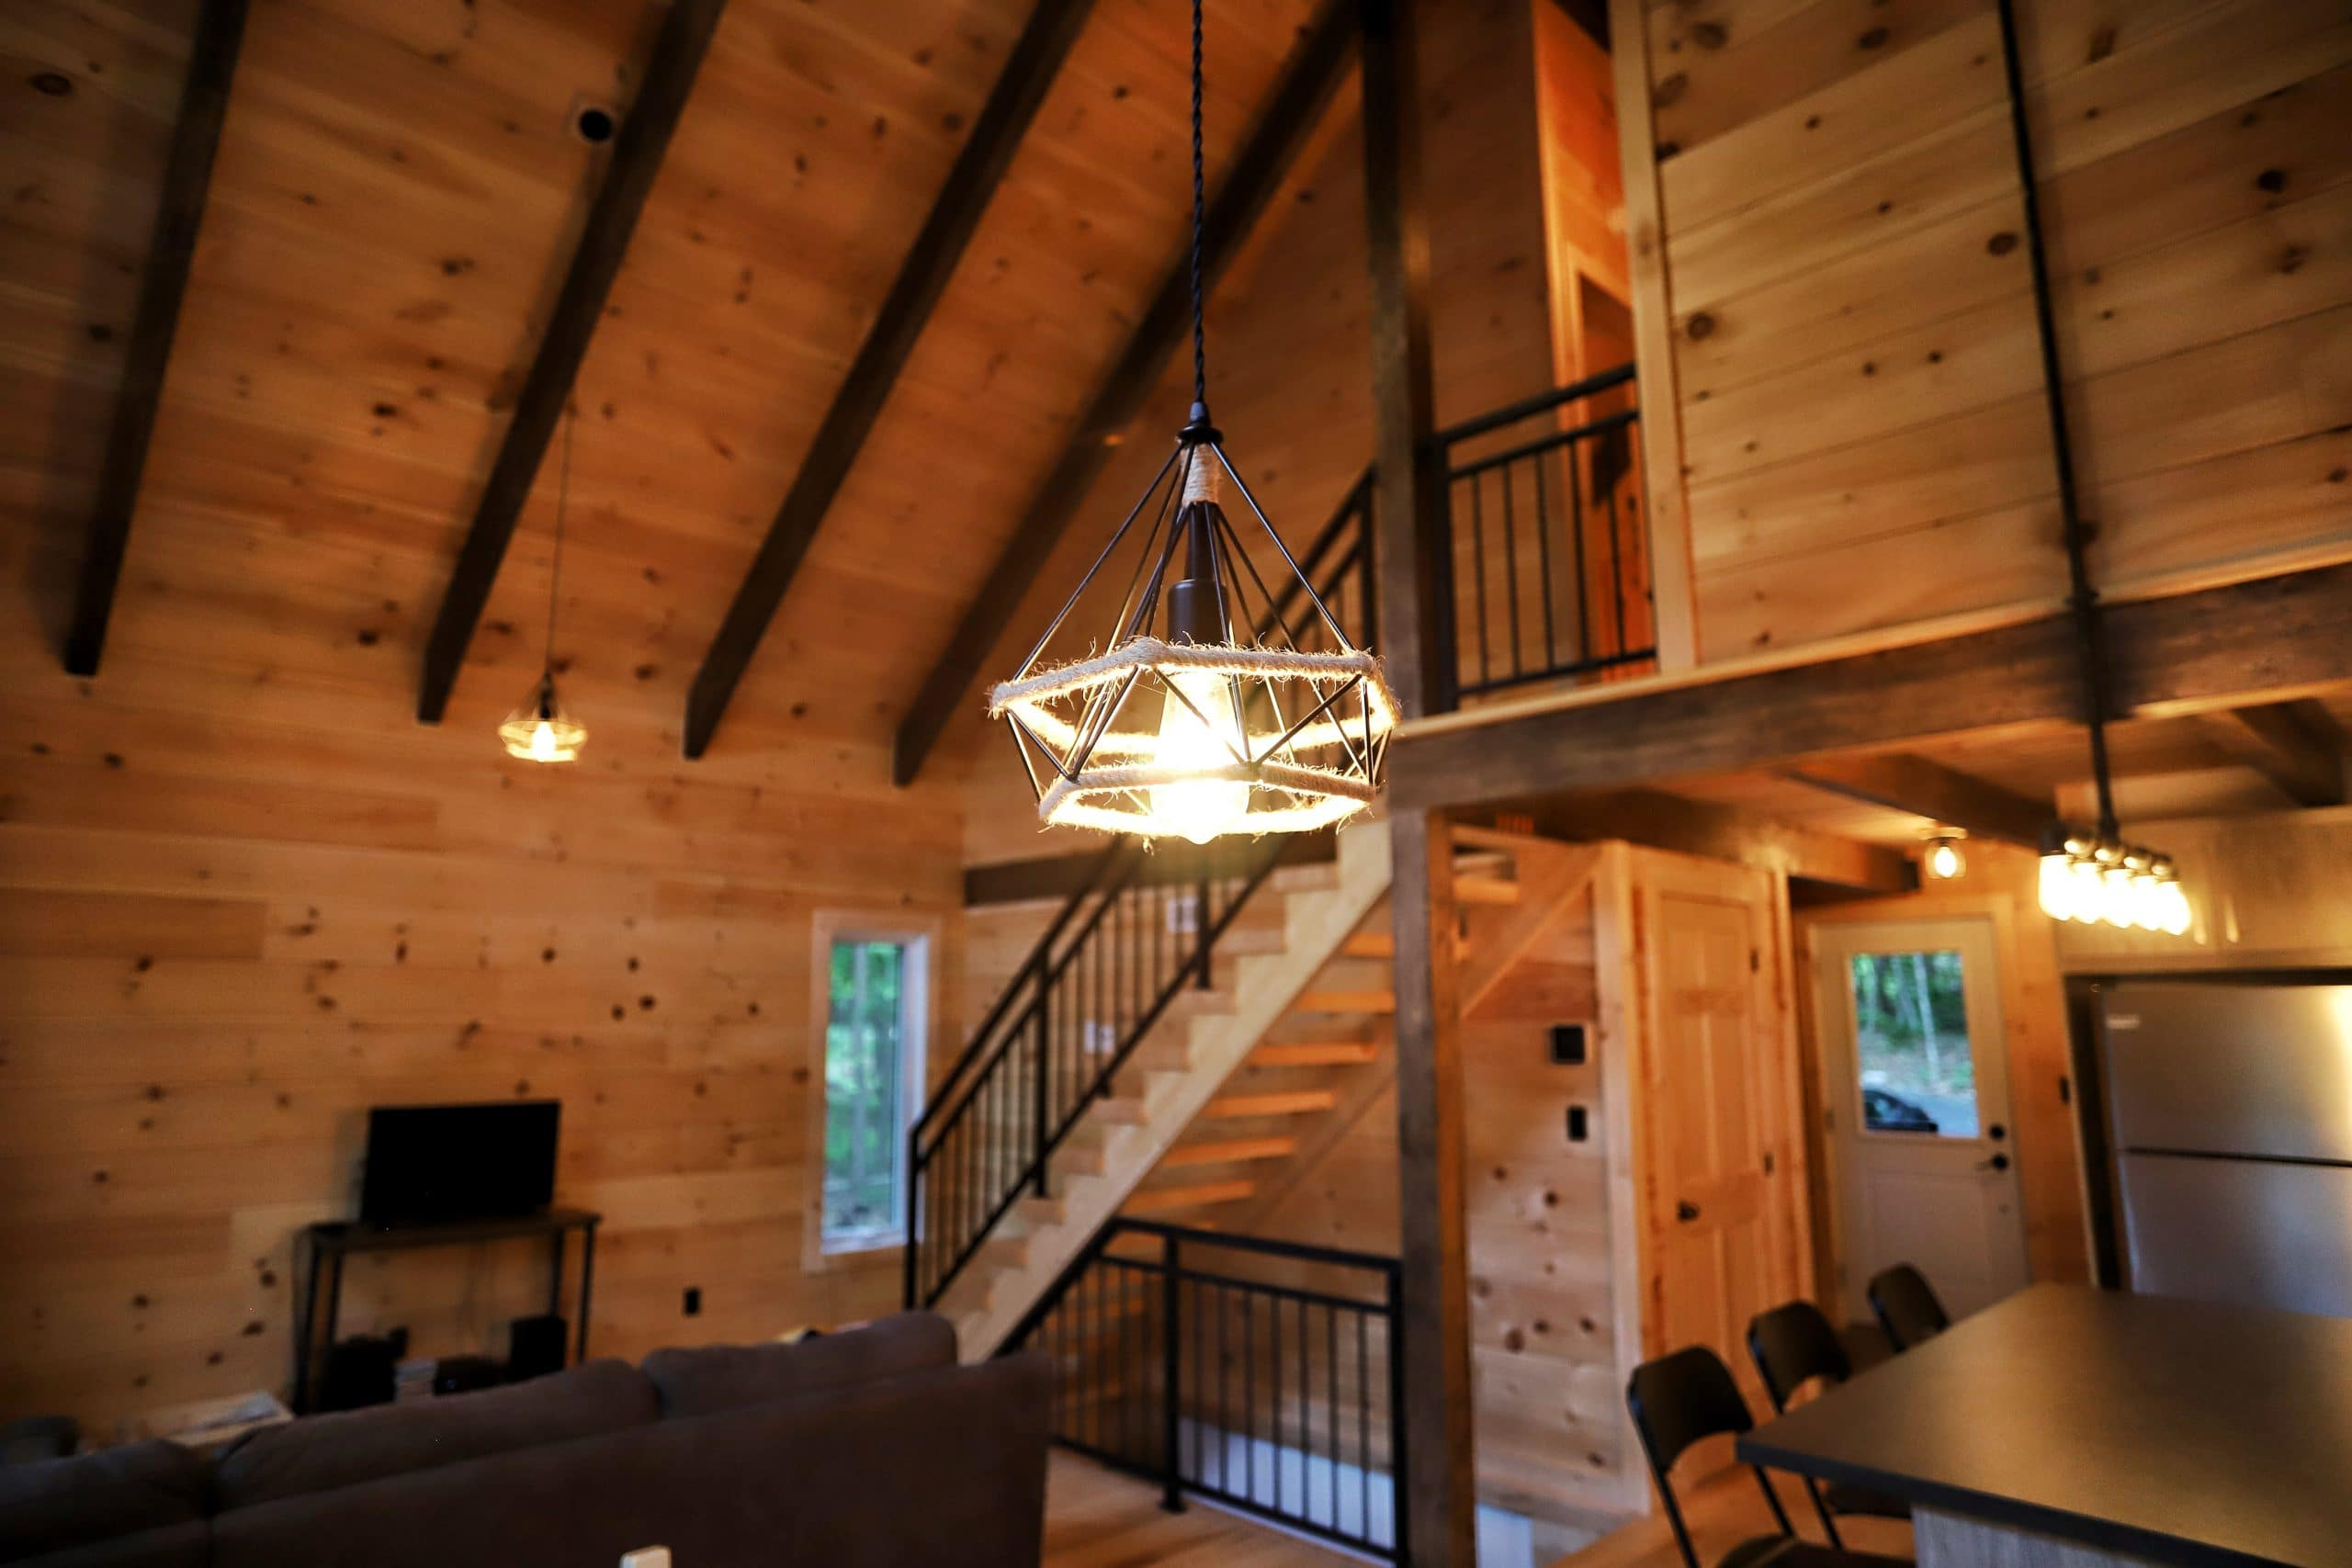 Photos of the chalet, number 27